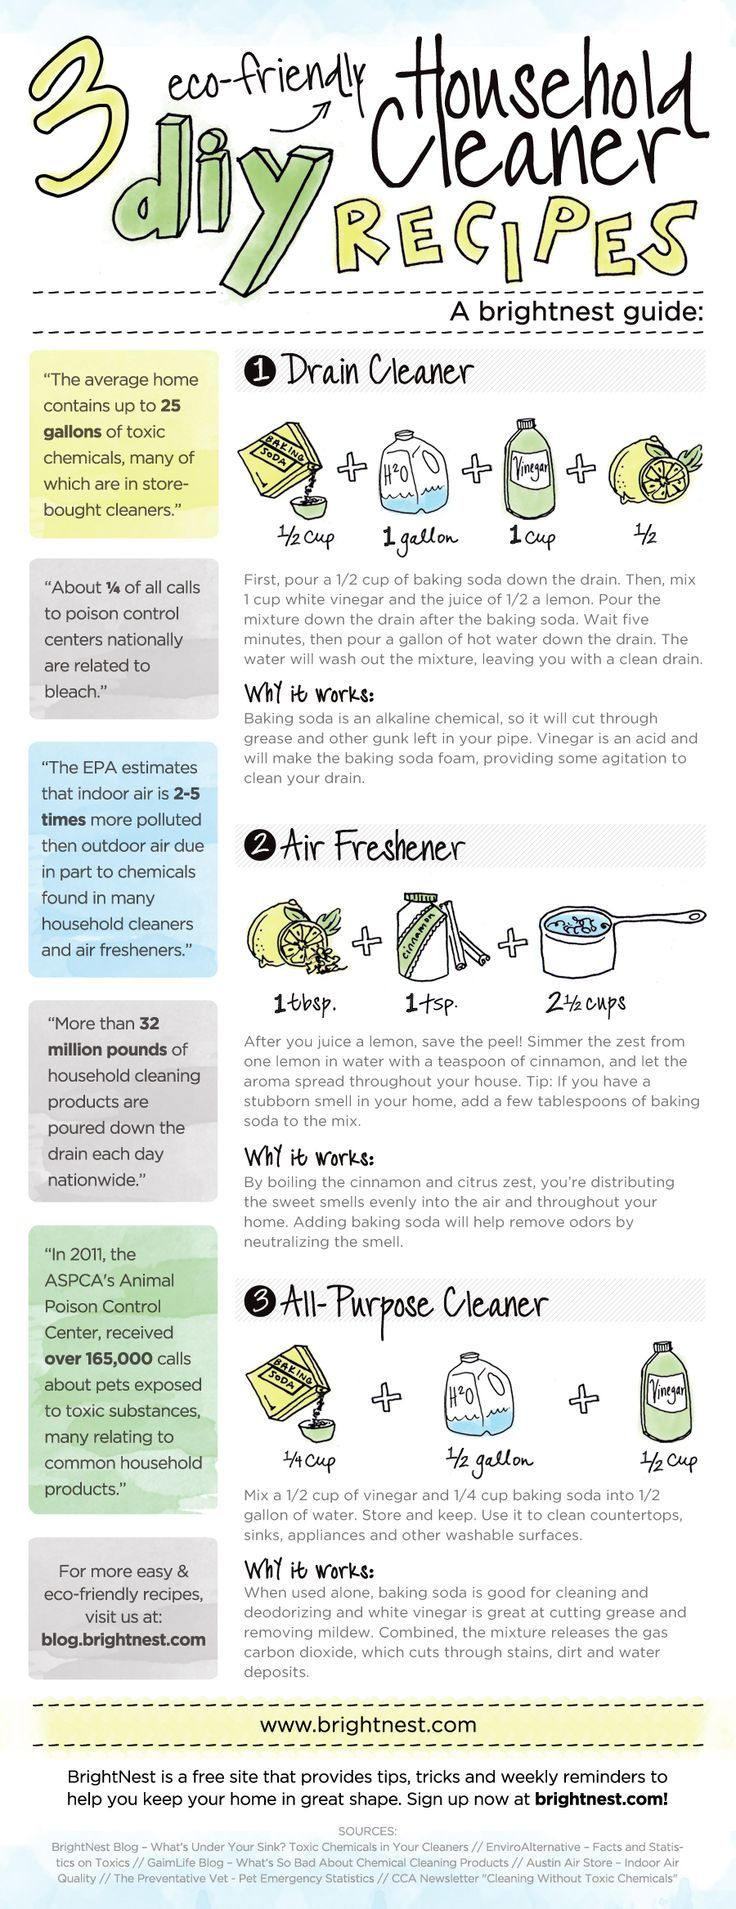 Eco-friendly household cleaners - #DIY recipes. Save money and ditch the chemical toxins when you spring clean this year. More eco-friendly home tips and tricks when you personalize a free http://brightnest.com account.